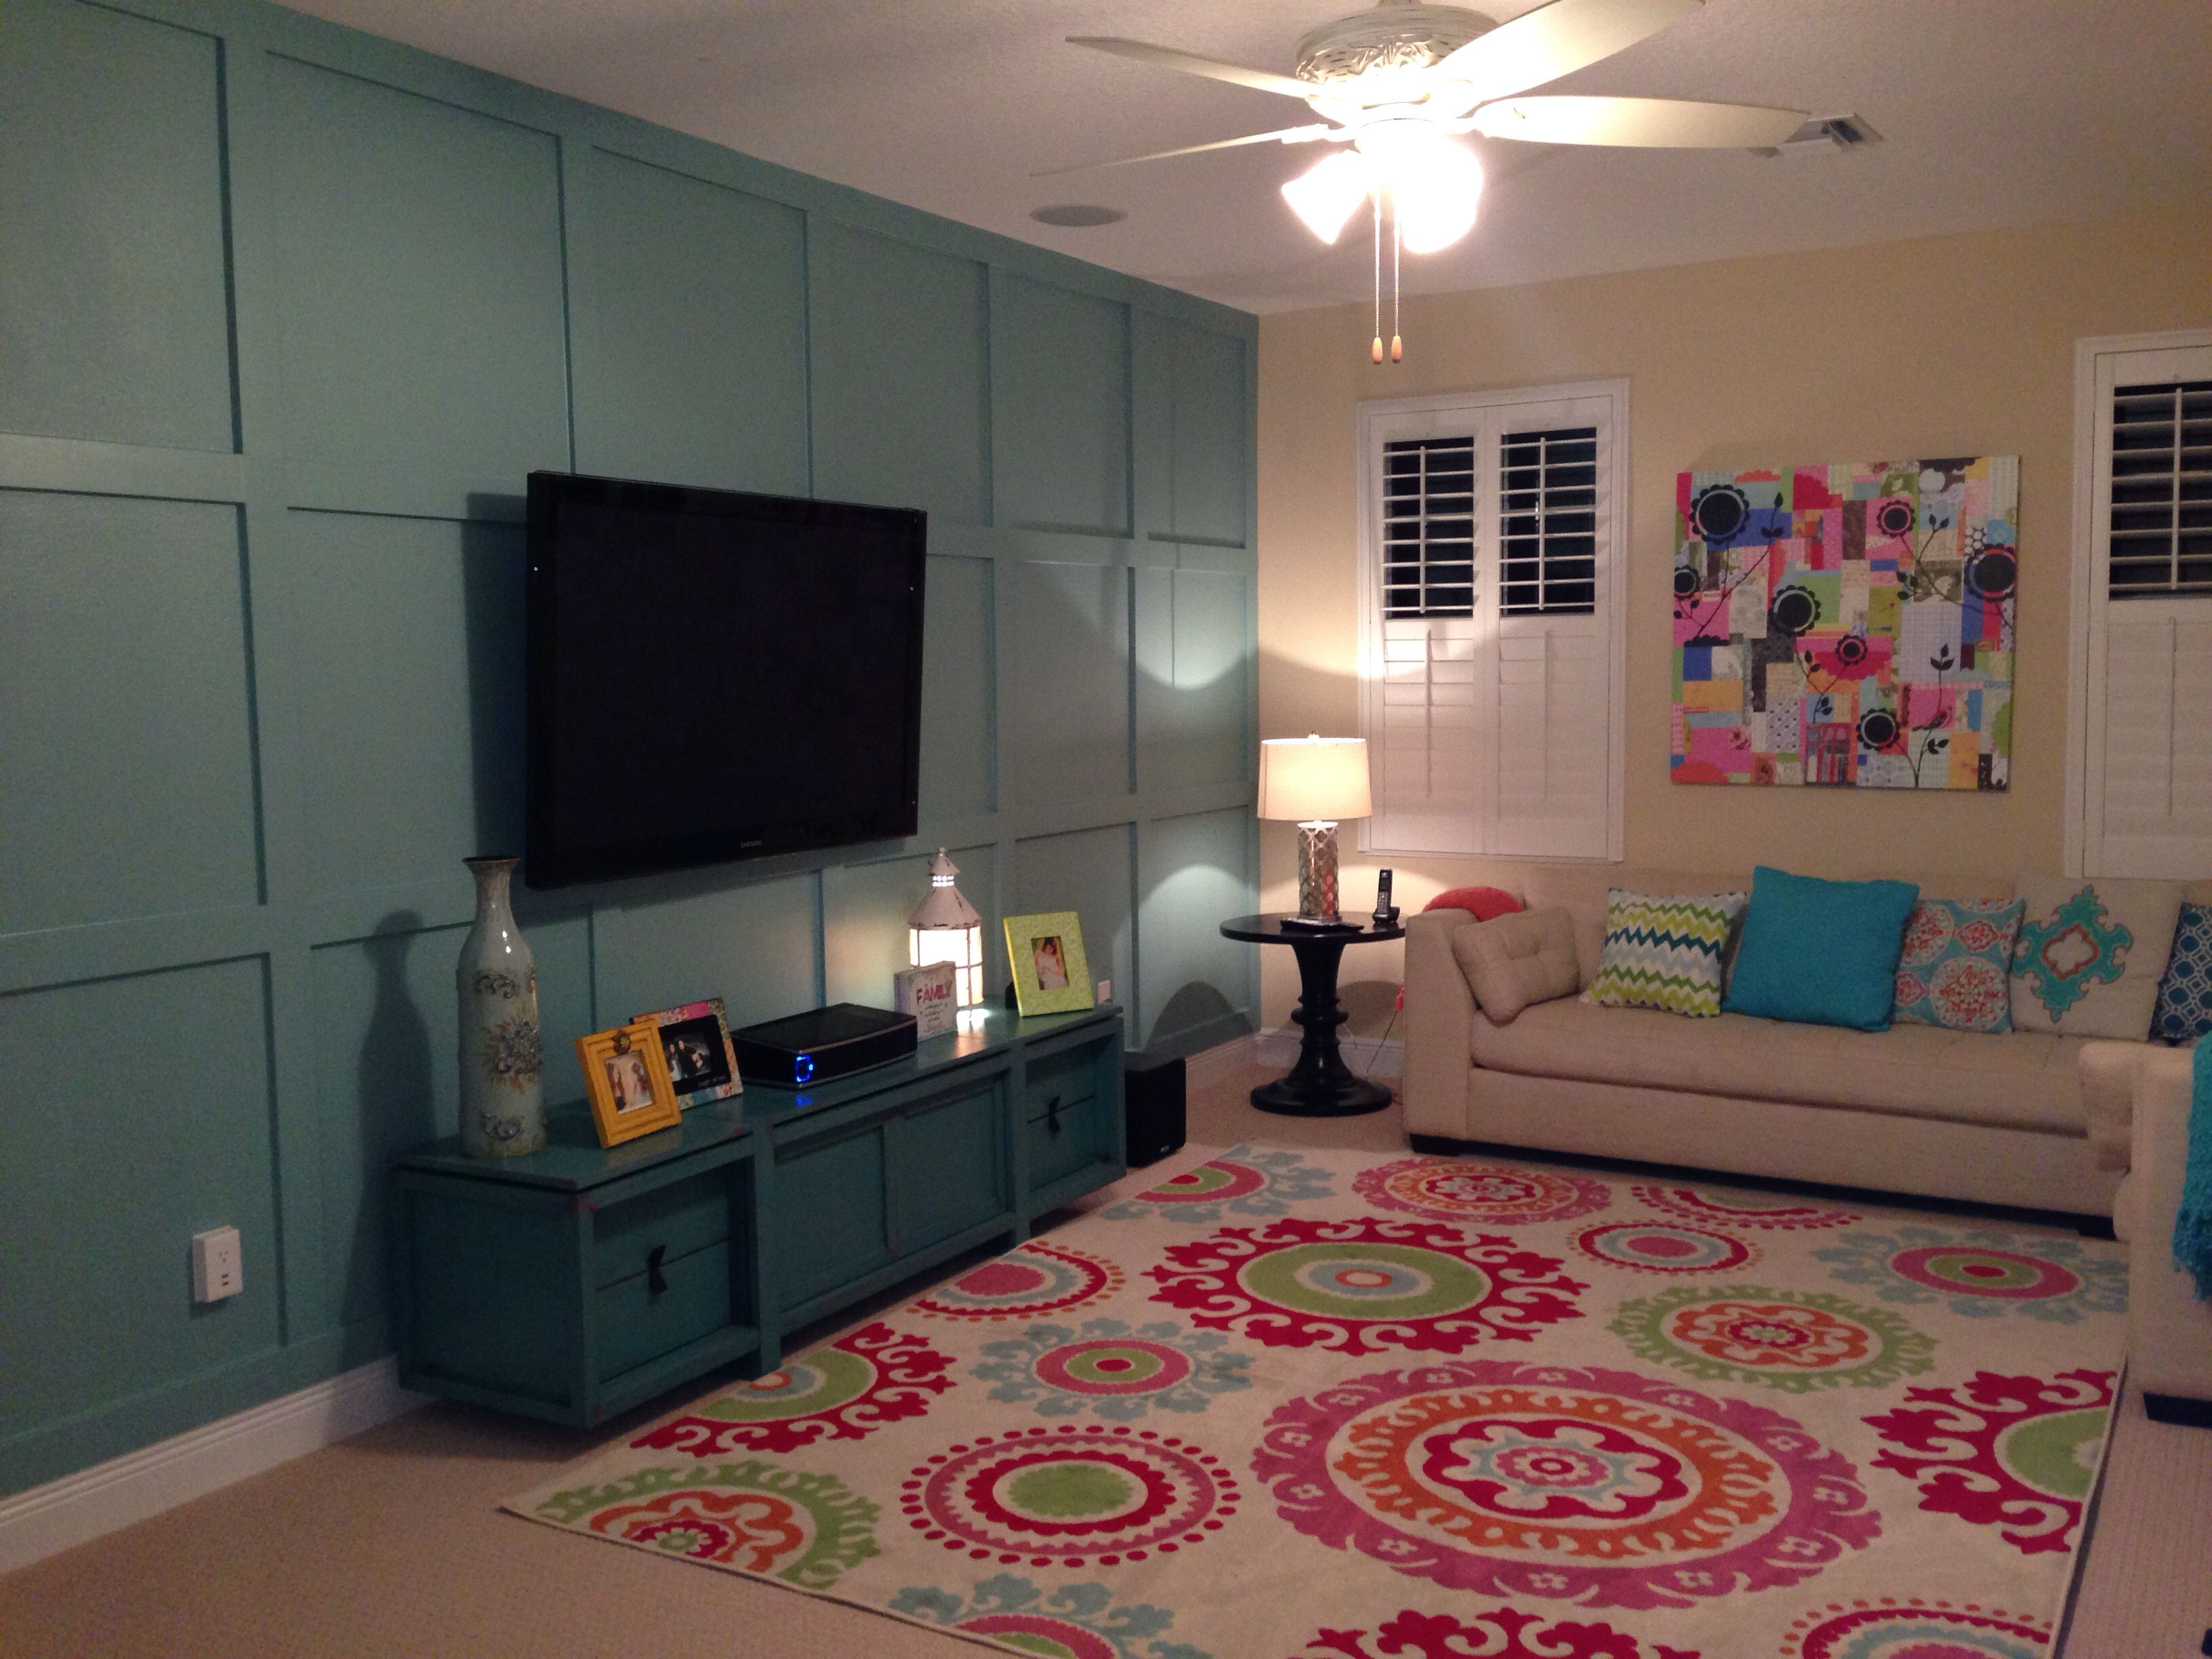 Loft bedroom ideas for teenage girls  Love the colors in the room and the feature wall Great room for